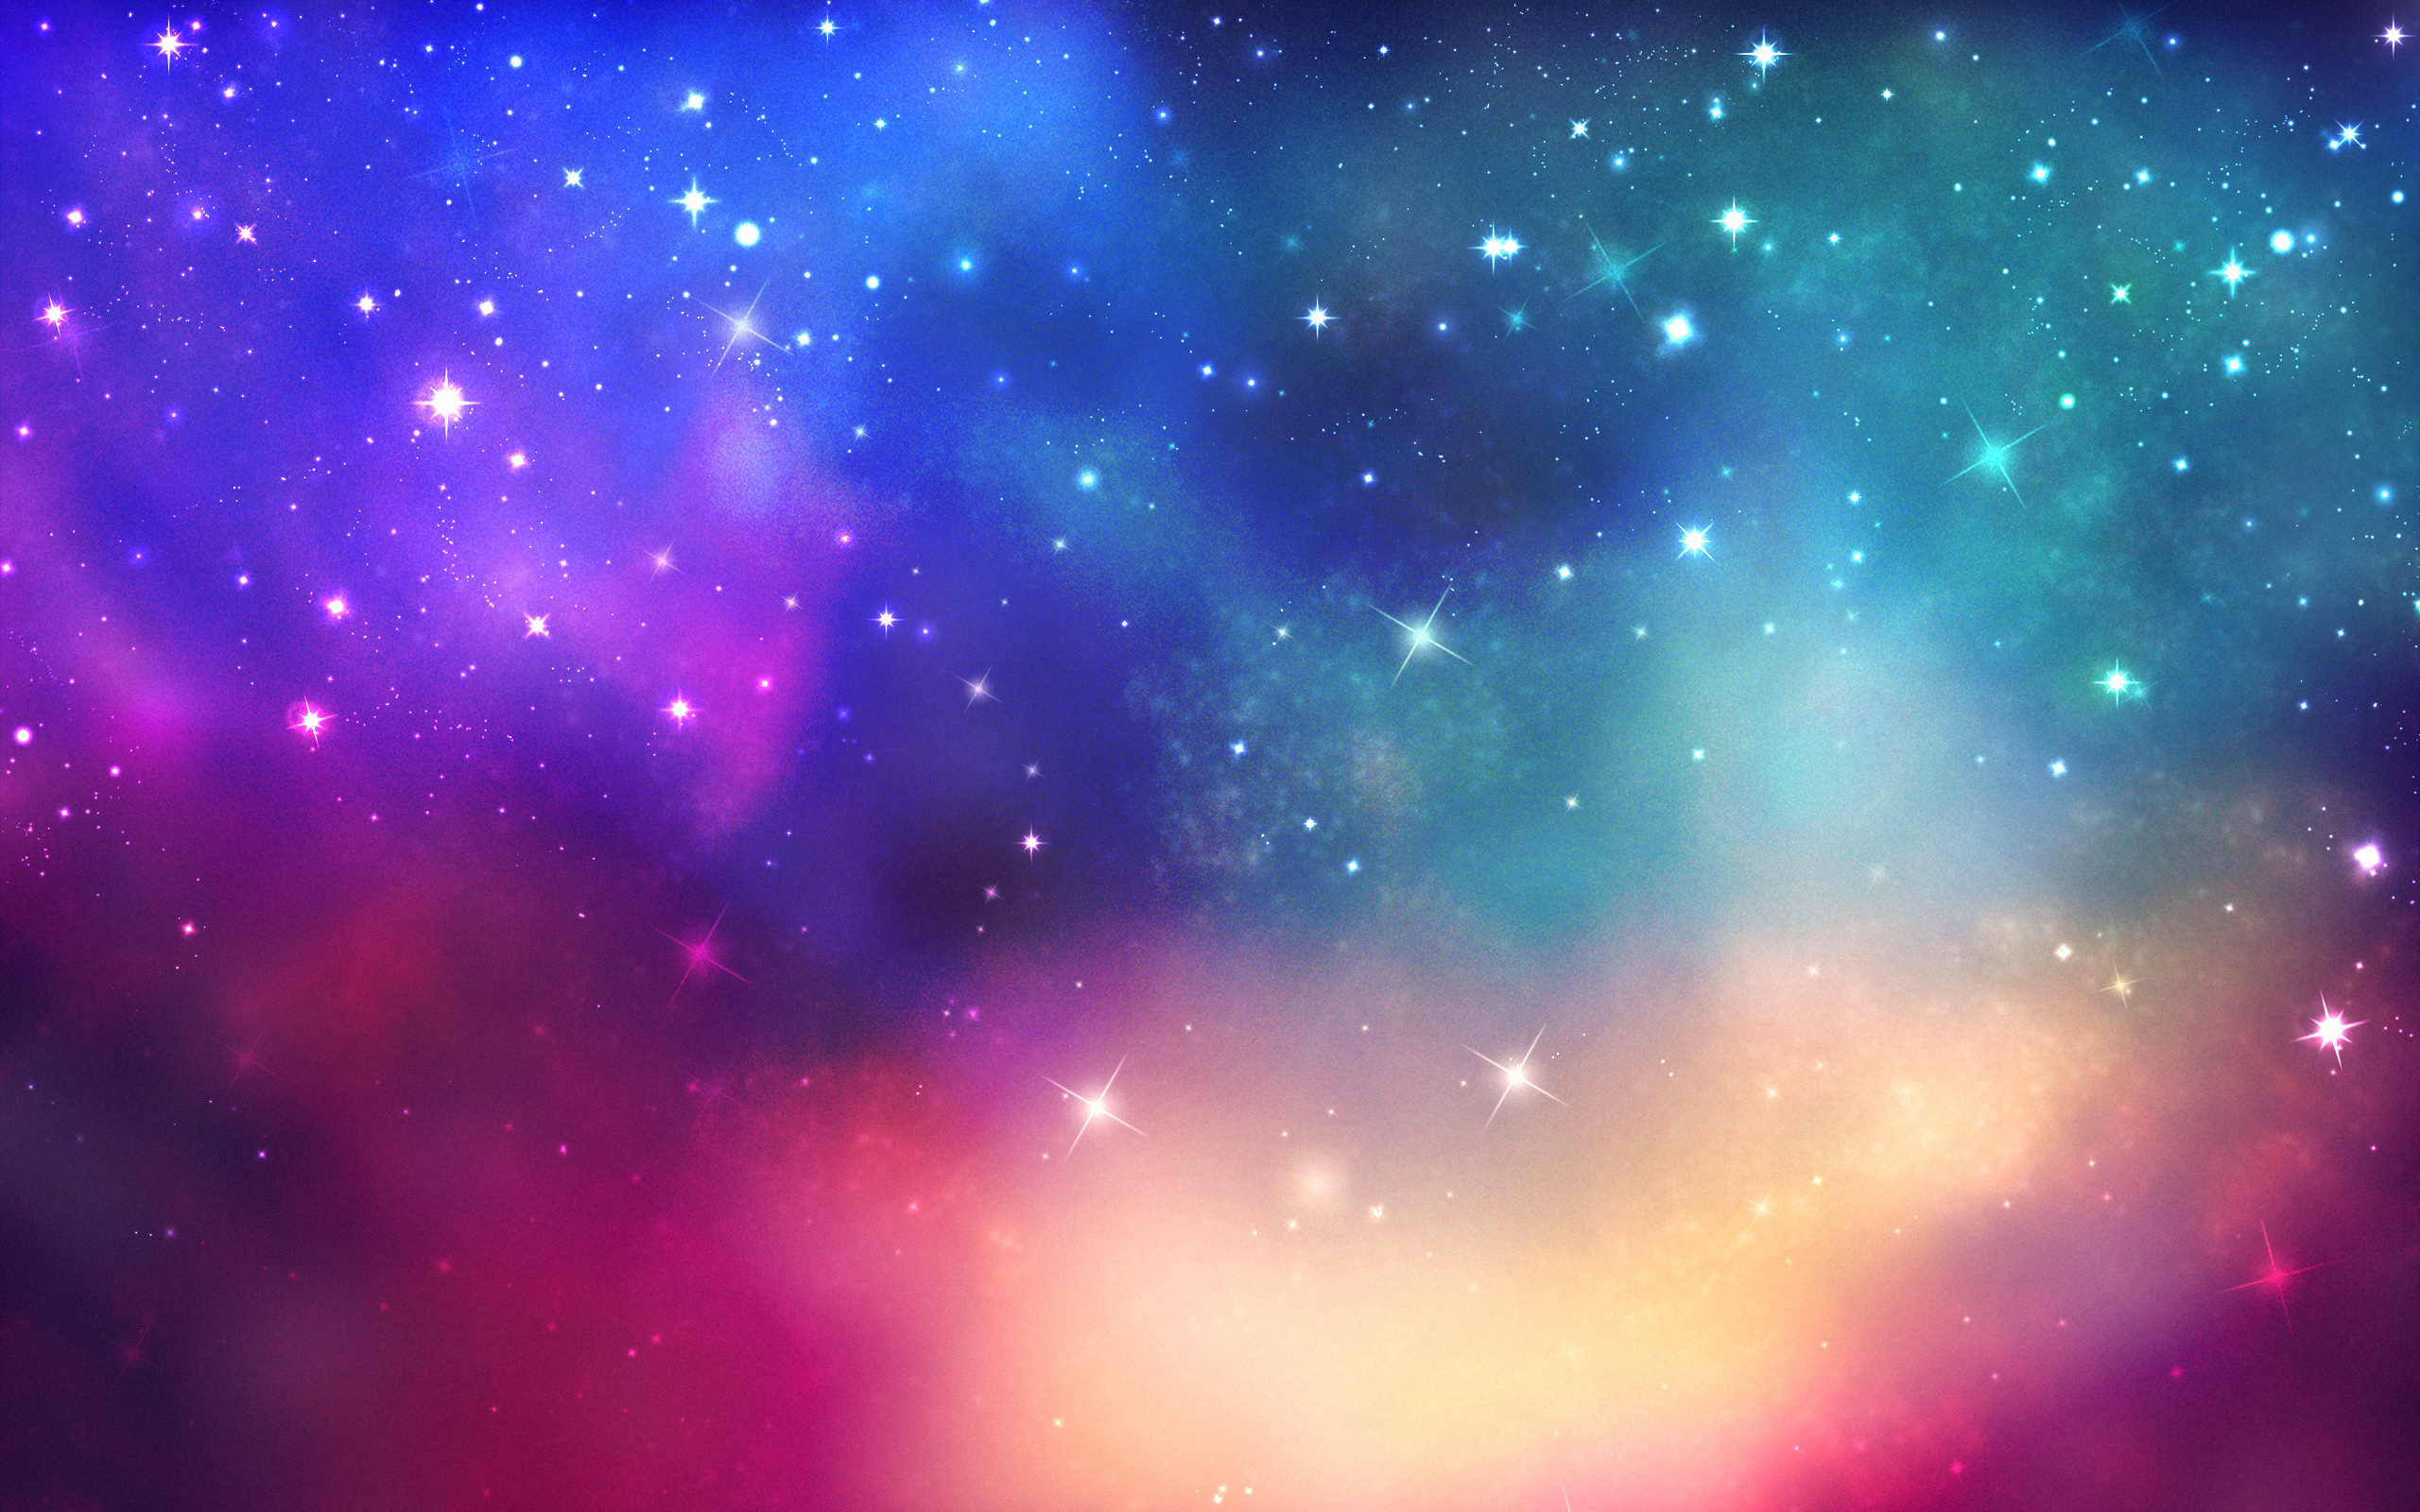 star wallpapers outer space   HD Desktop Wallpapers 4k HD 2560x1600